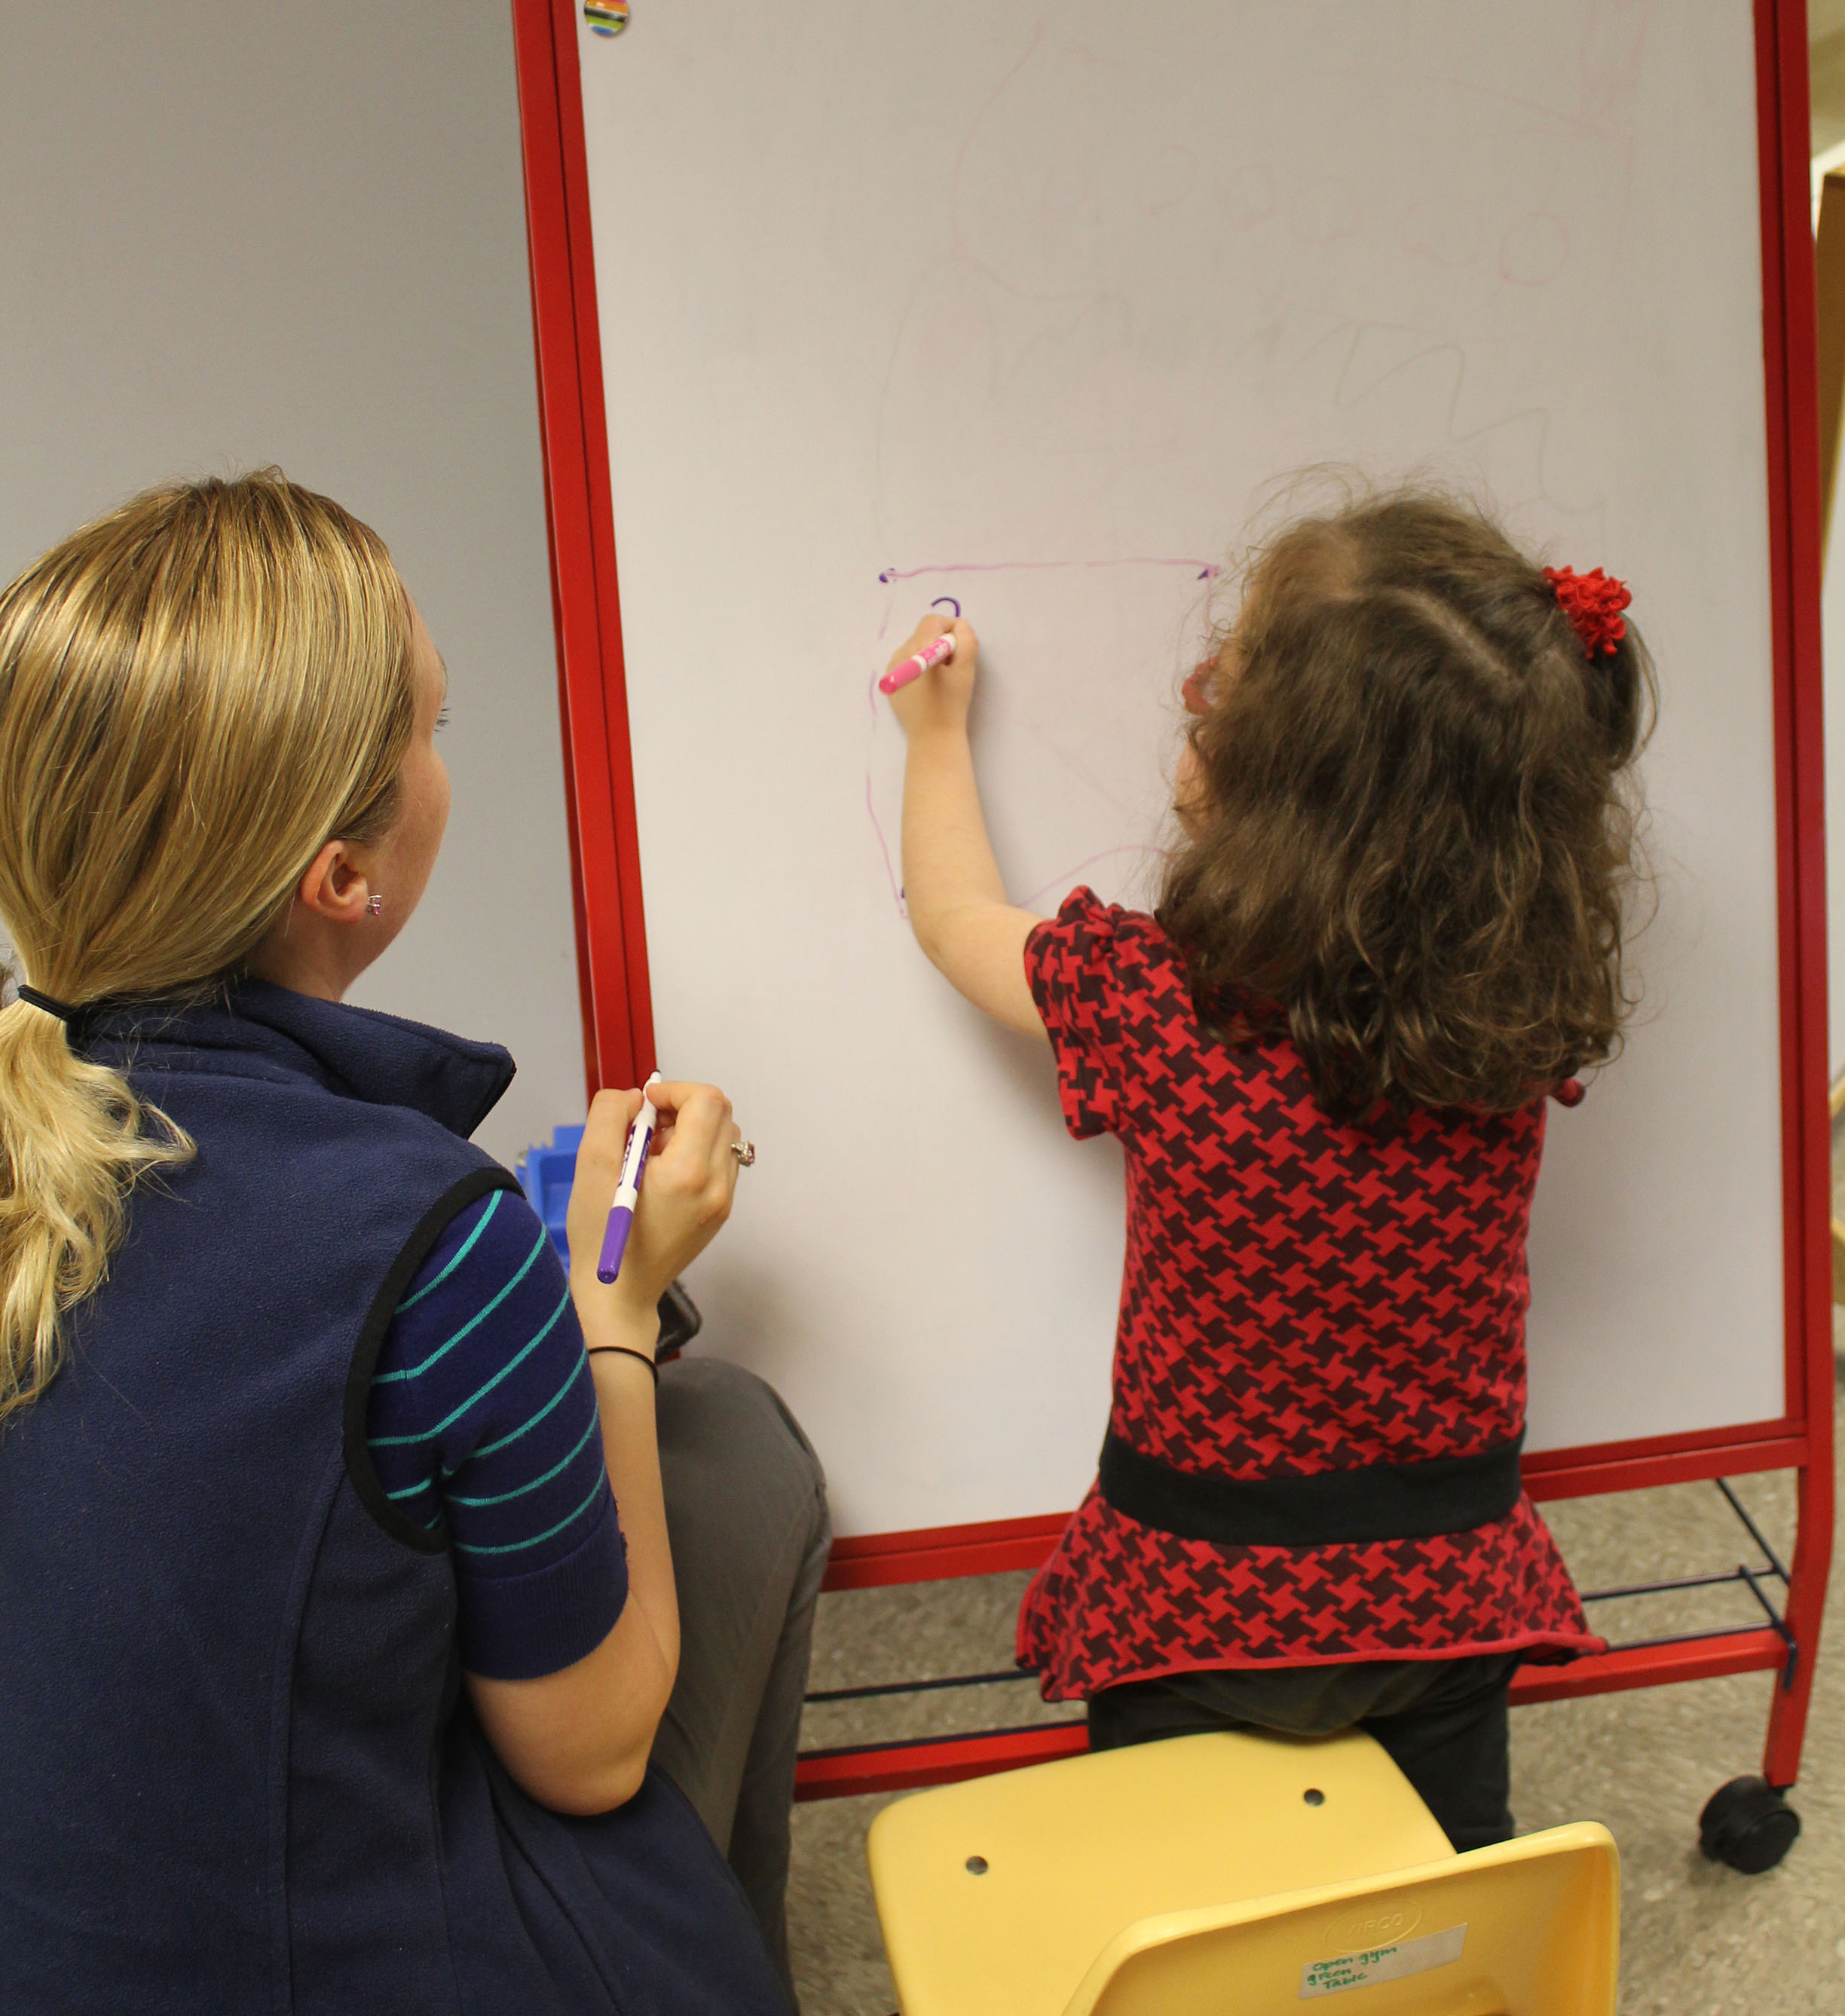 One-On-One Child Writing on White Board